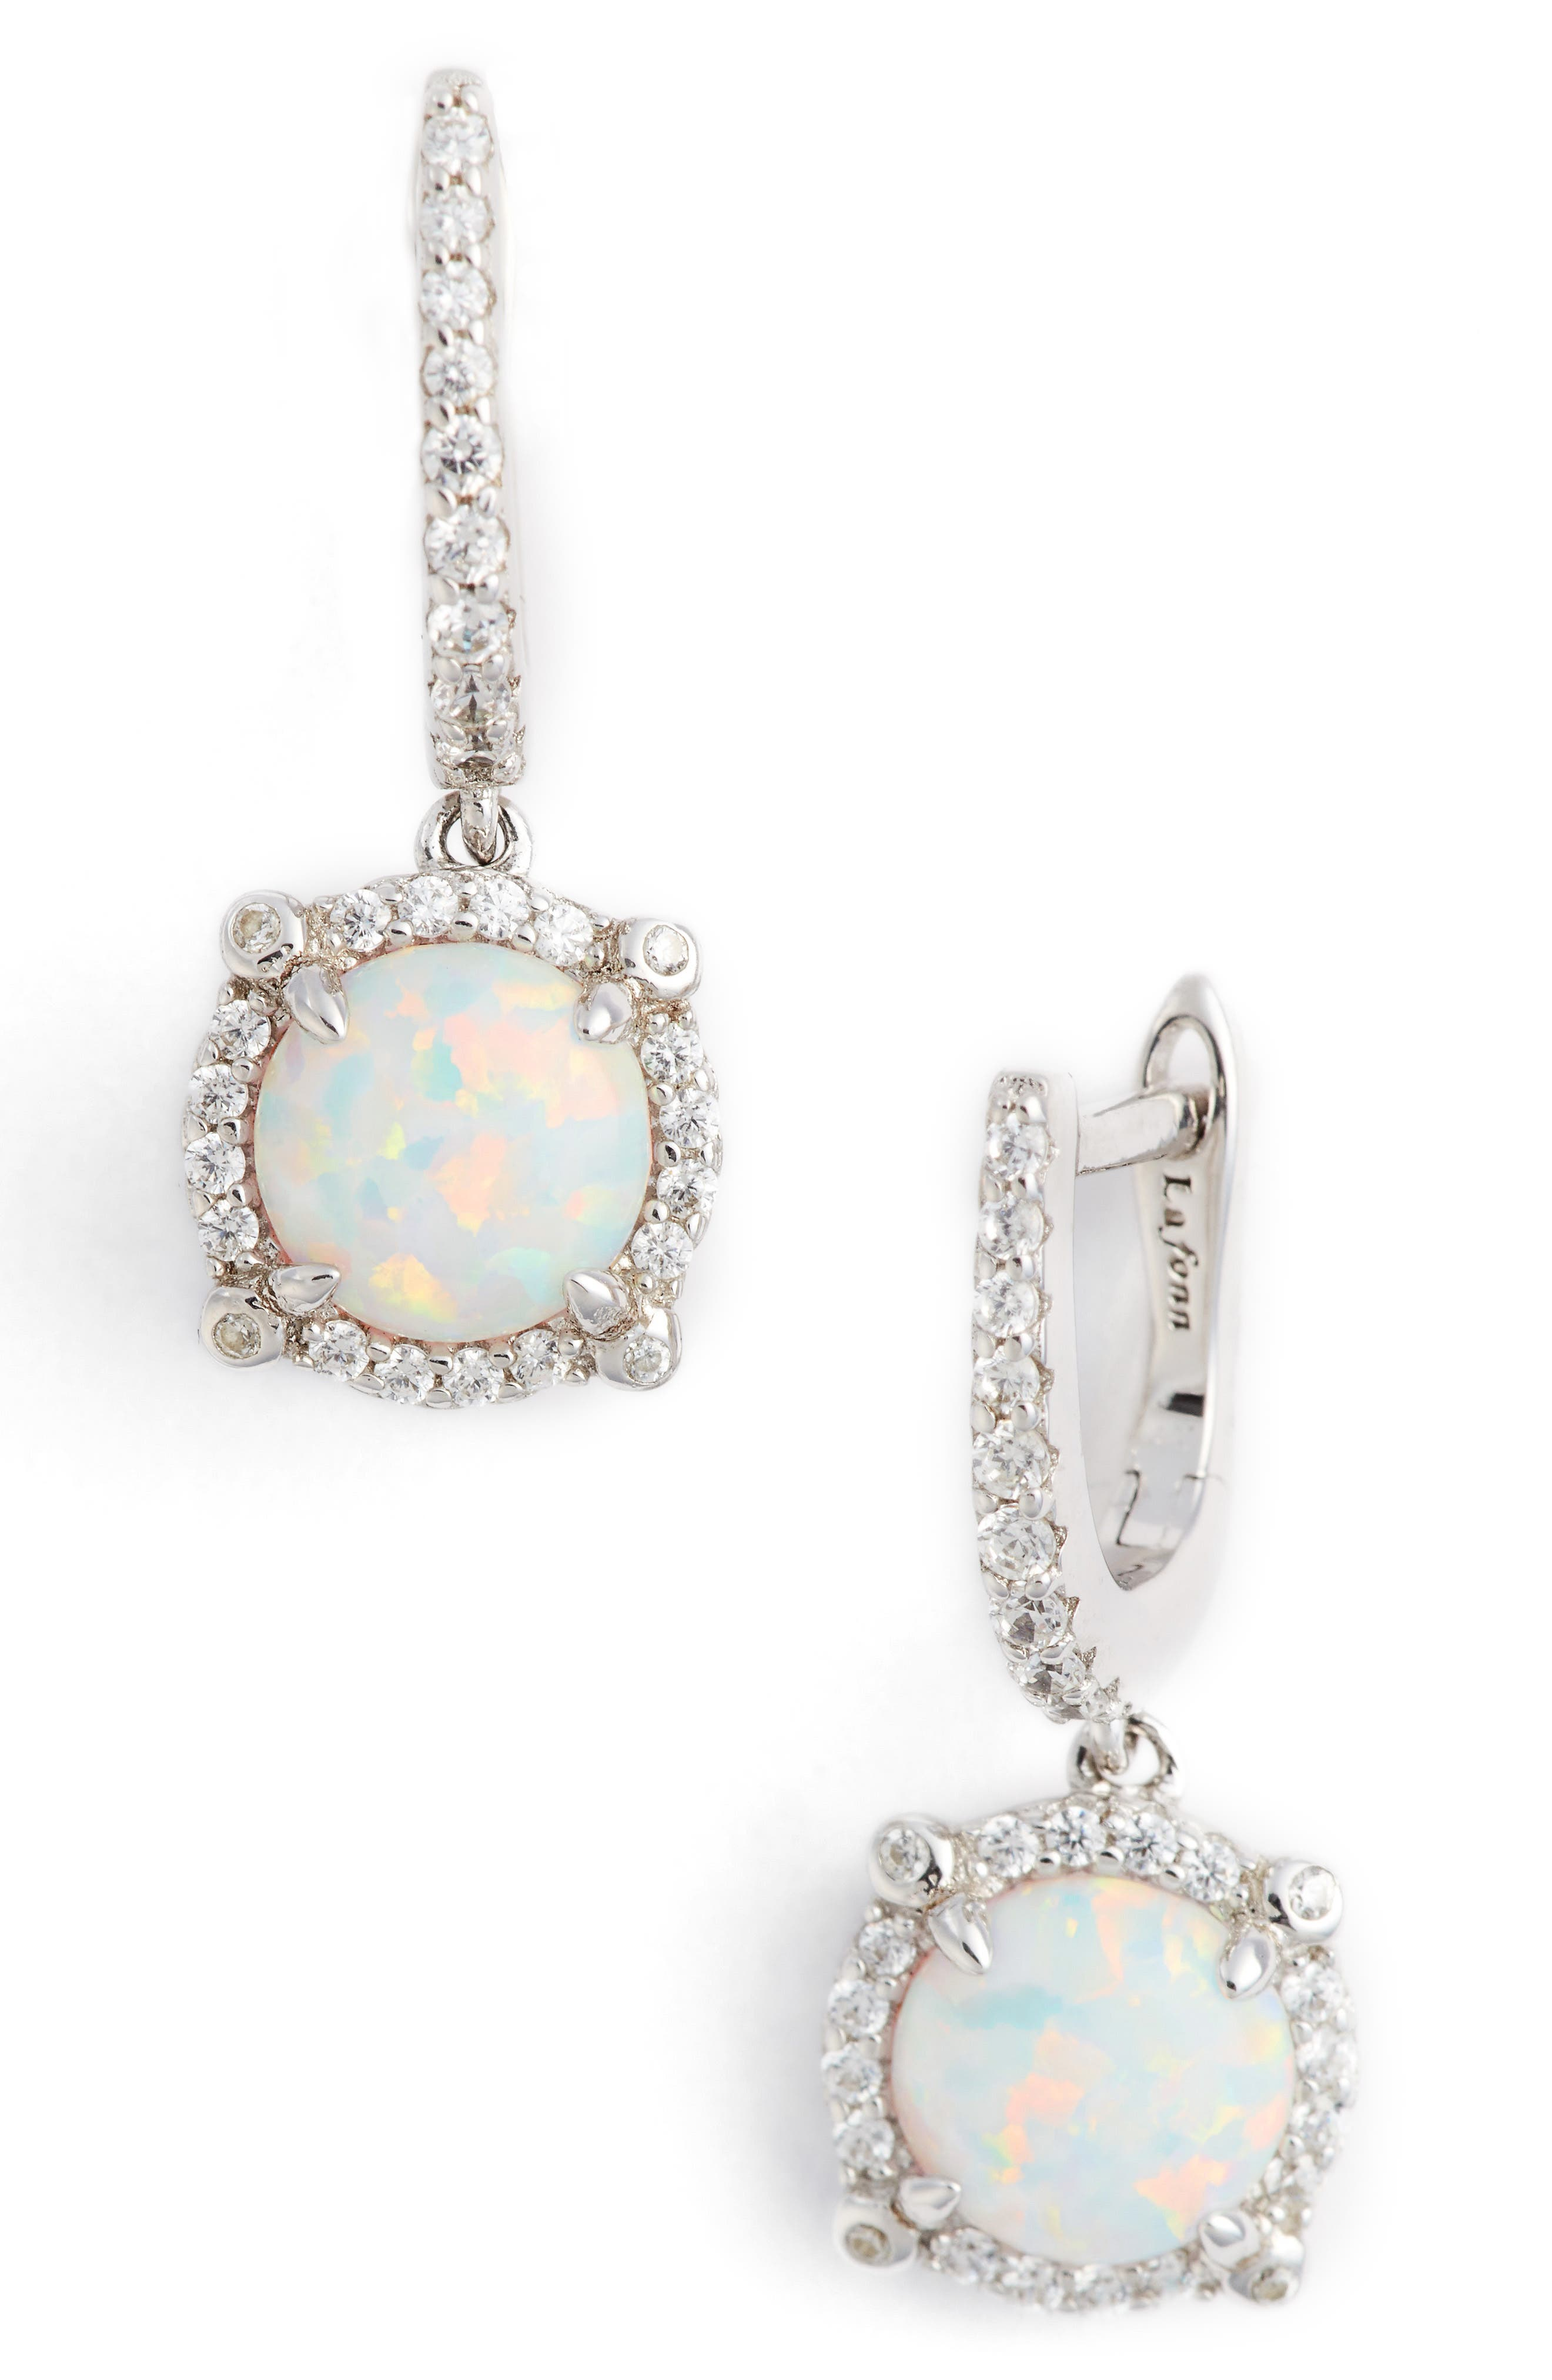 Simulated Diamond Drop Earrings,                         Main,                         color, Silver/ Opal/ Clear